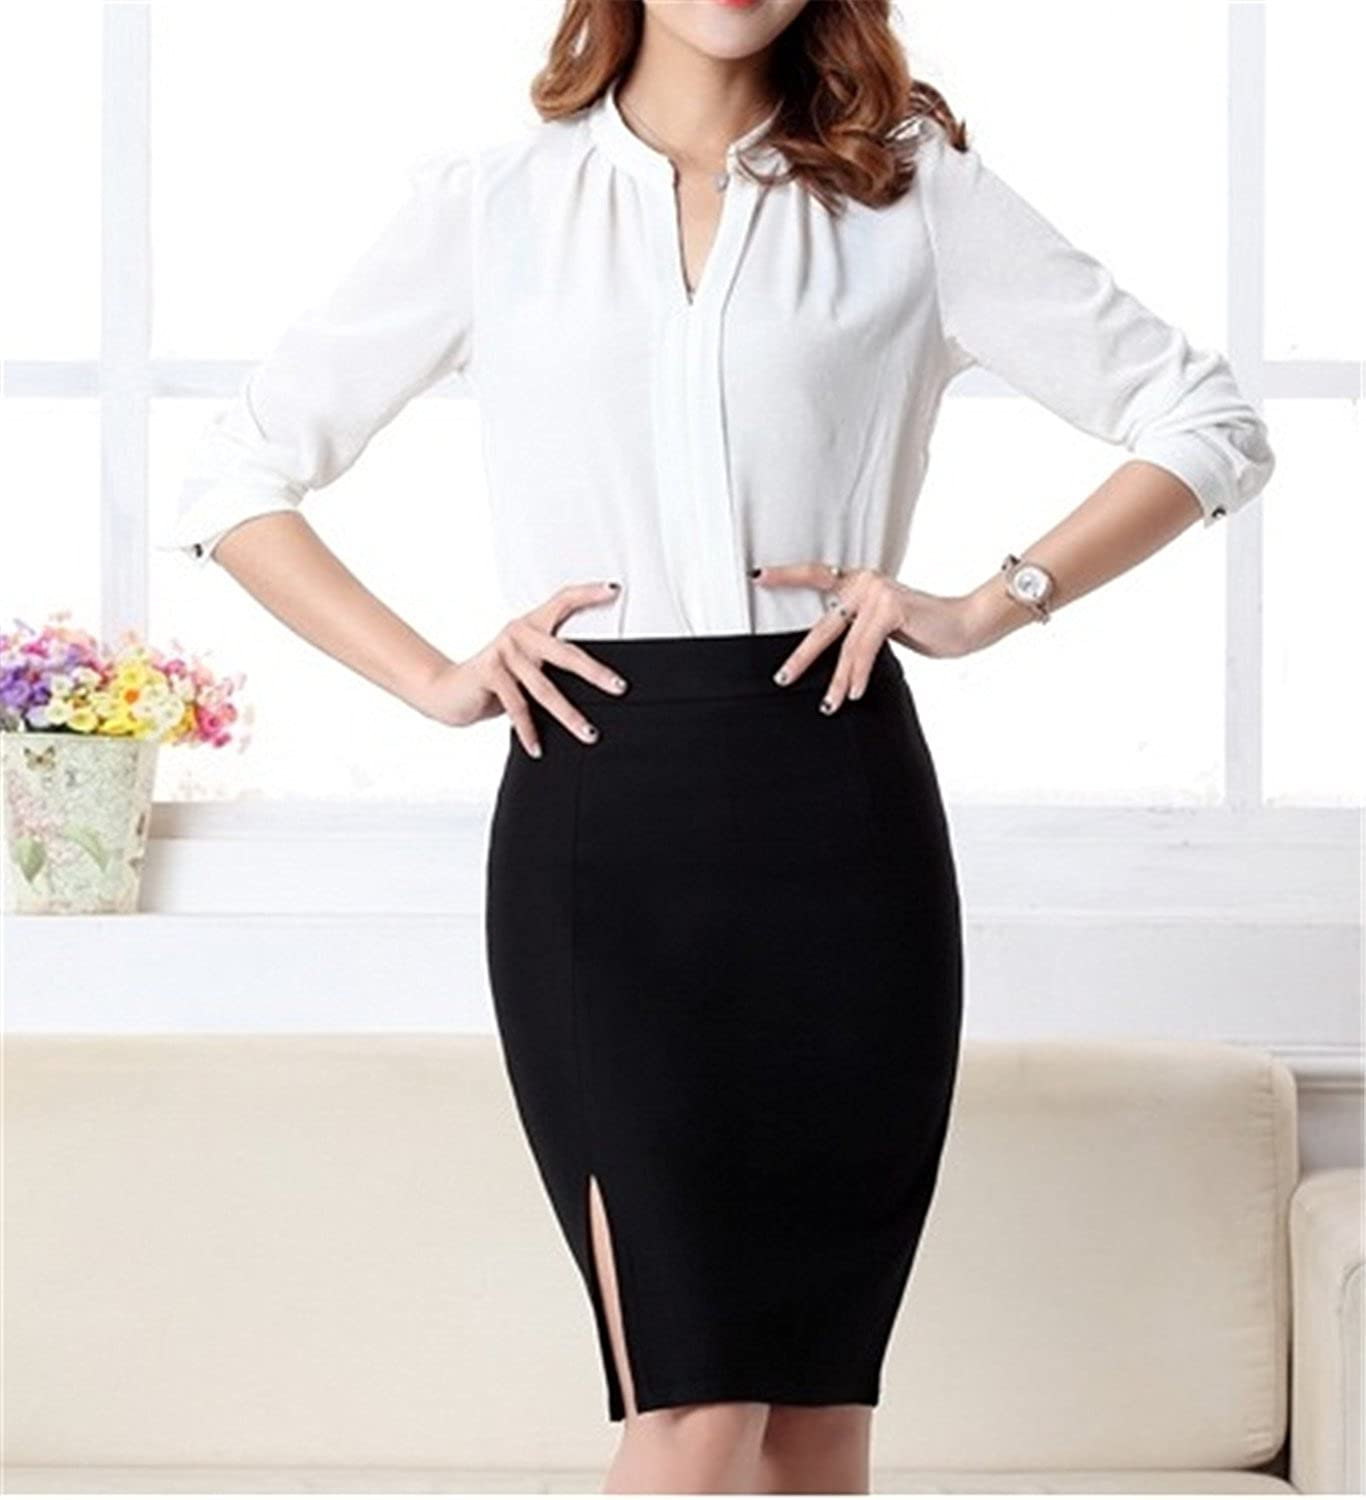 5d8eedc49 James Torr Comfotable Sexy 2017 New Arrival Fashion Women Formal Work Wear  Skirts Ladies Sexy High Waist Mini Pencil Skirt 3 Colors Plus Size Bottom  5602 ...